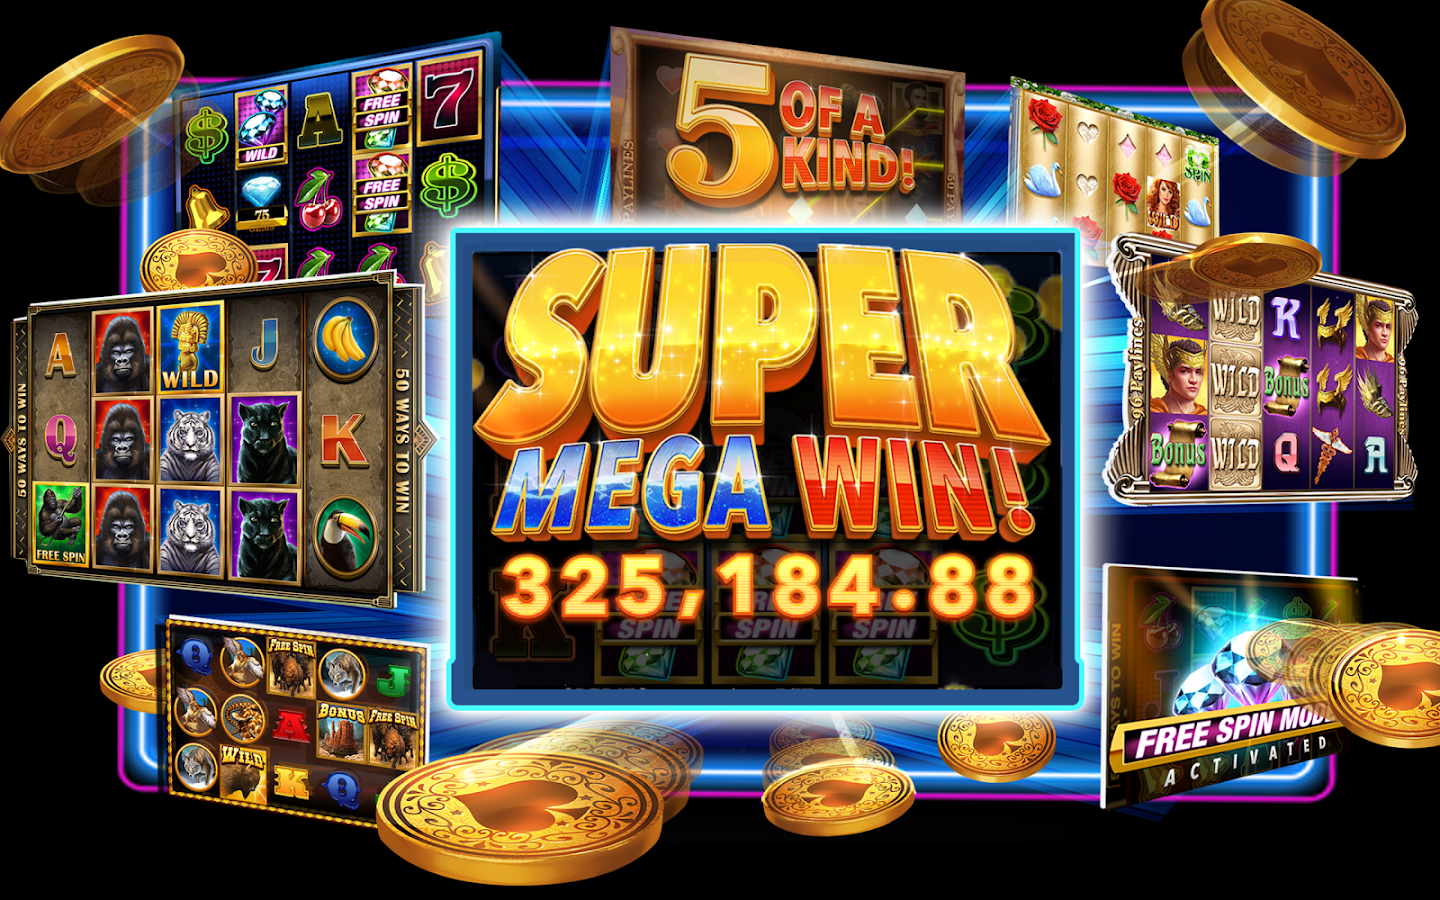 highest jackpot online casino